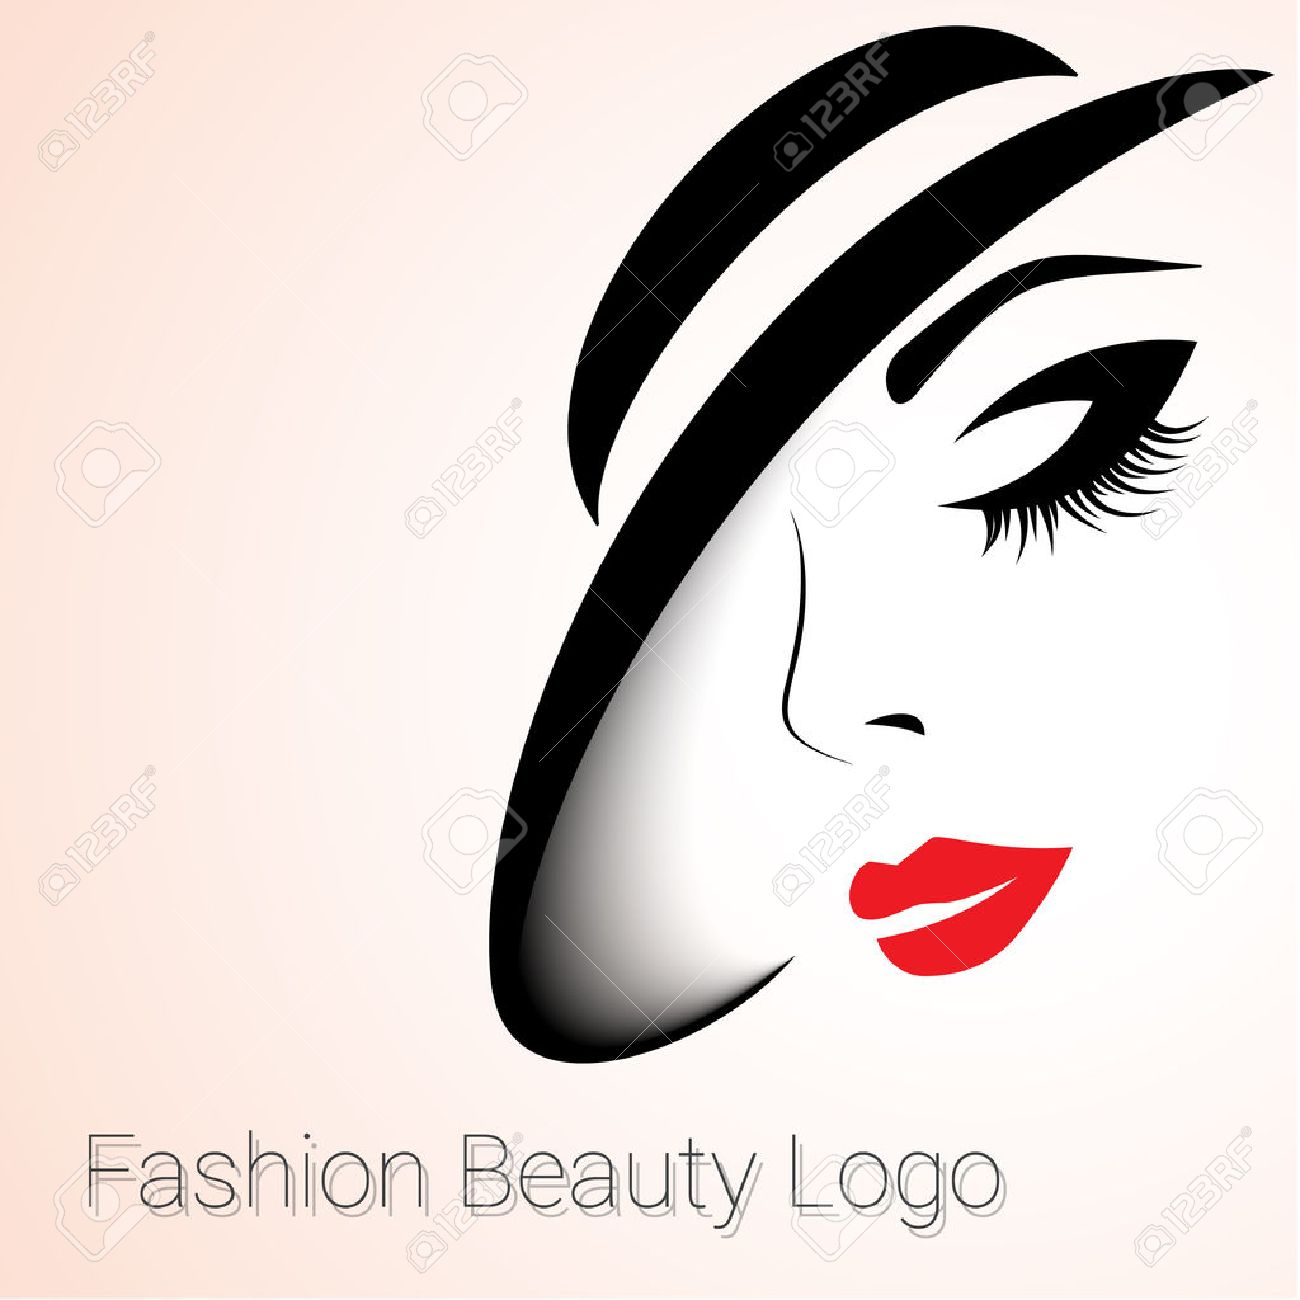 Fashion And Beauty Logo Big Variant Womans Face With Hat Stock Vector